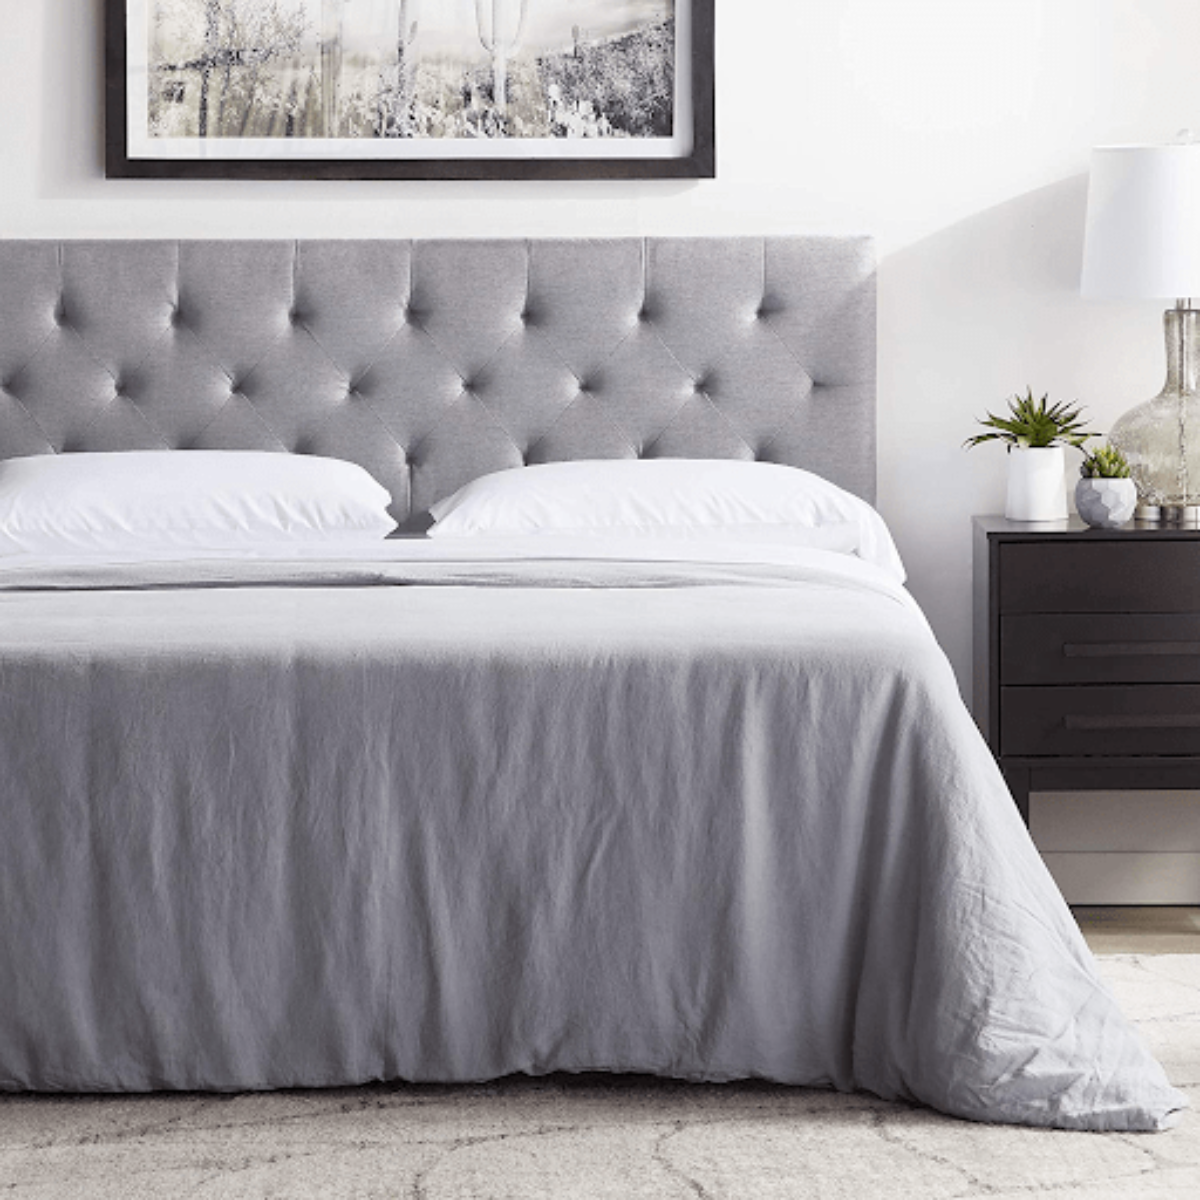 How To Attach A Headboard To Any Bed A Step By Step Guide